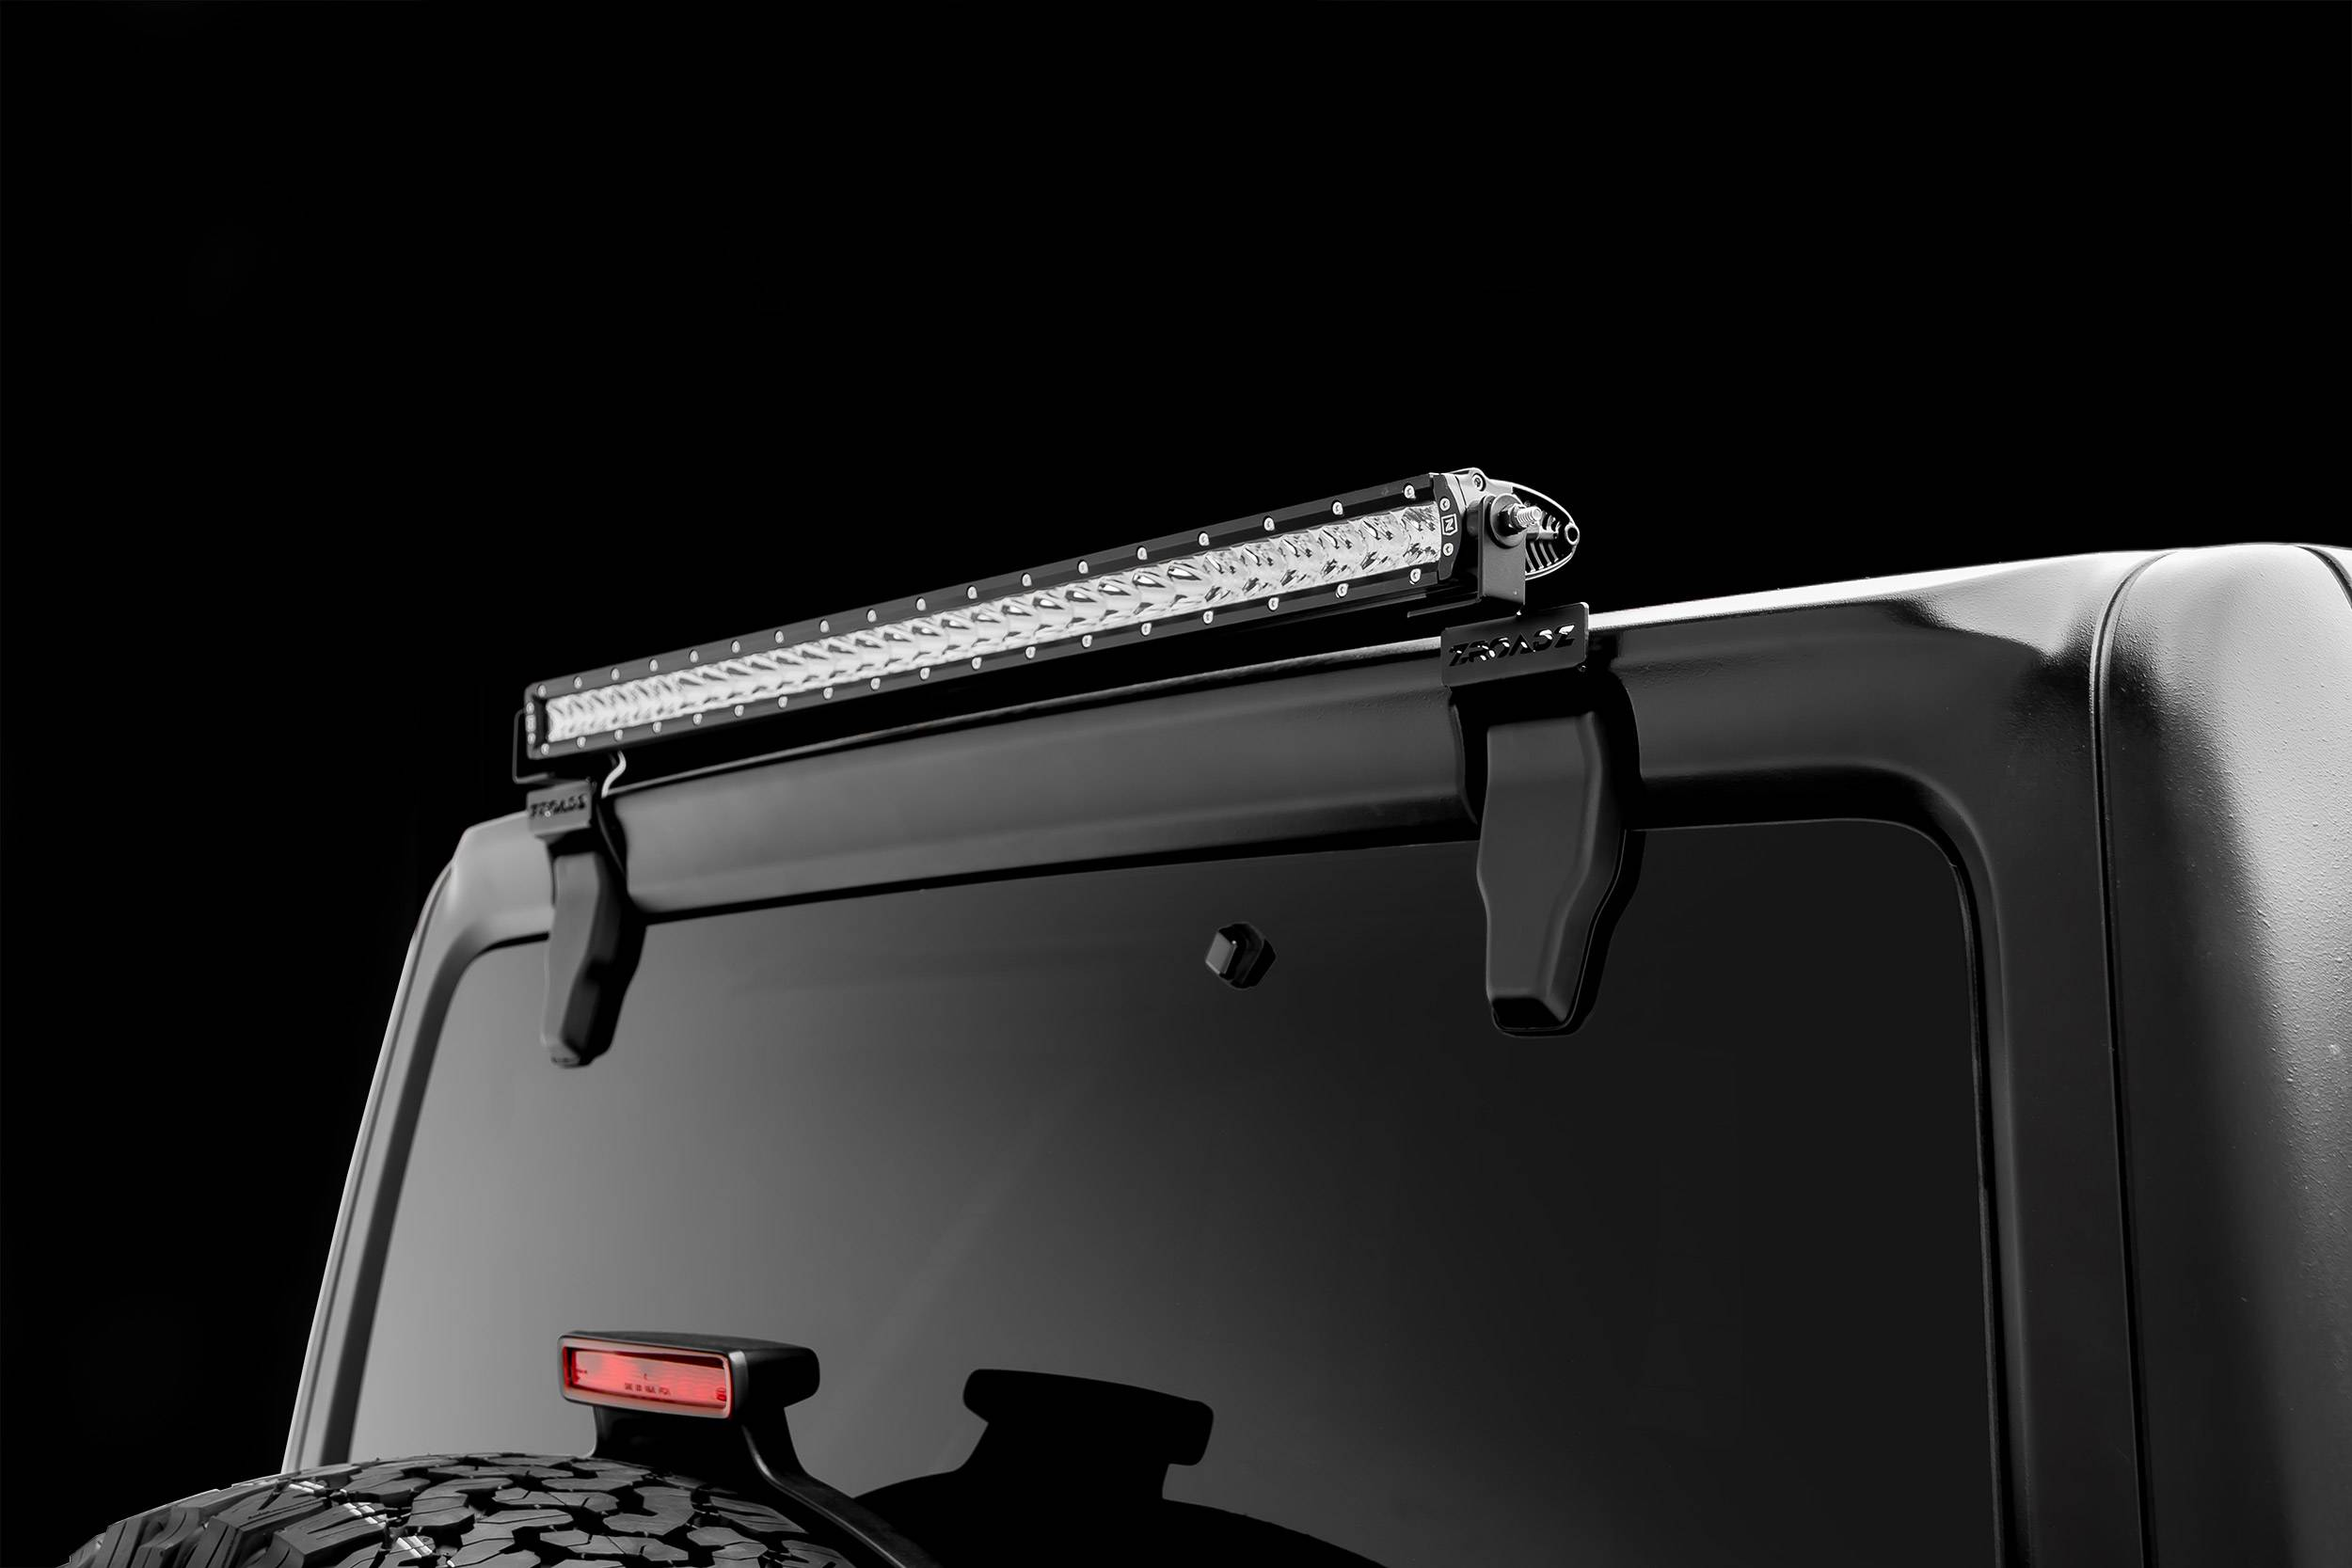 2018-2019 Jeep JL Rear Window LED Bracket to mount (1) 30 Inch Staight Single Row LED Light Bar - PN #Z394931